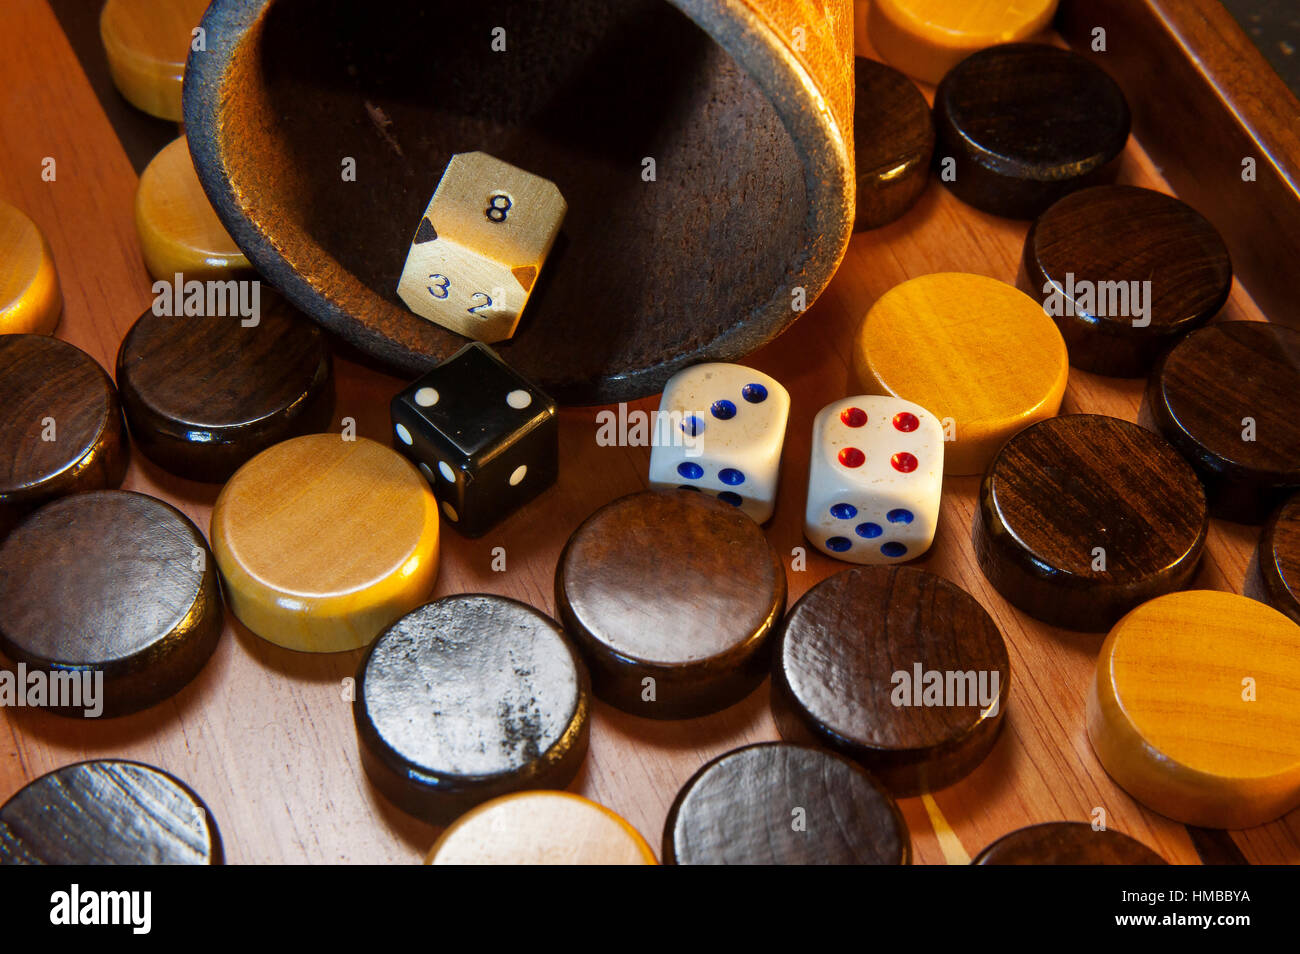 Different type of dice on a gamon board - Stock Image